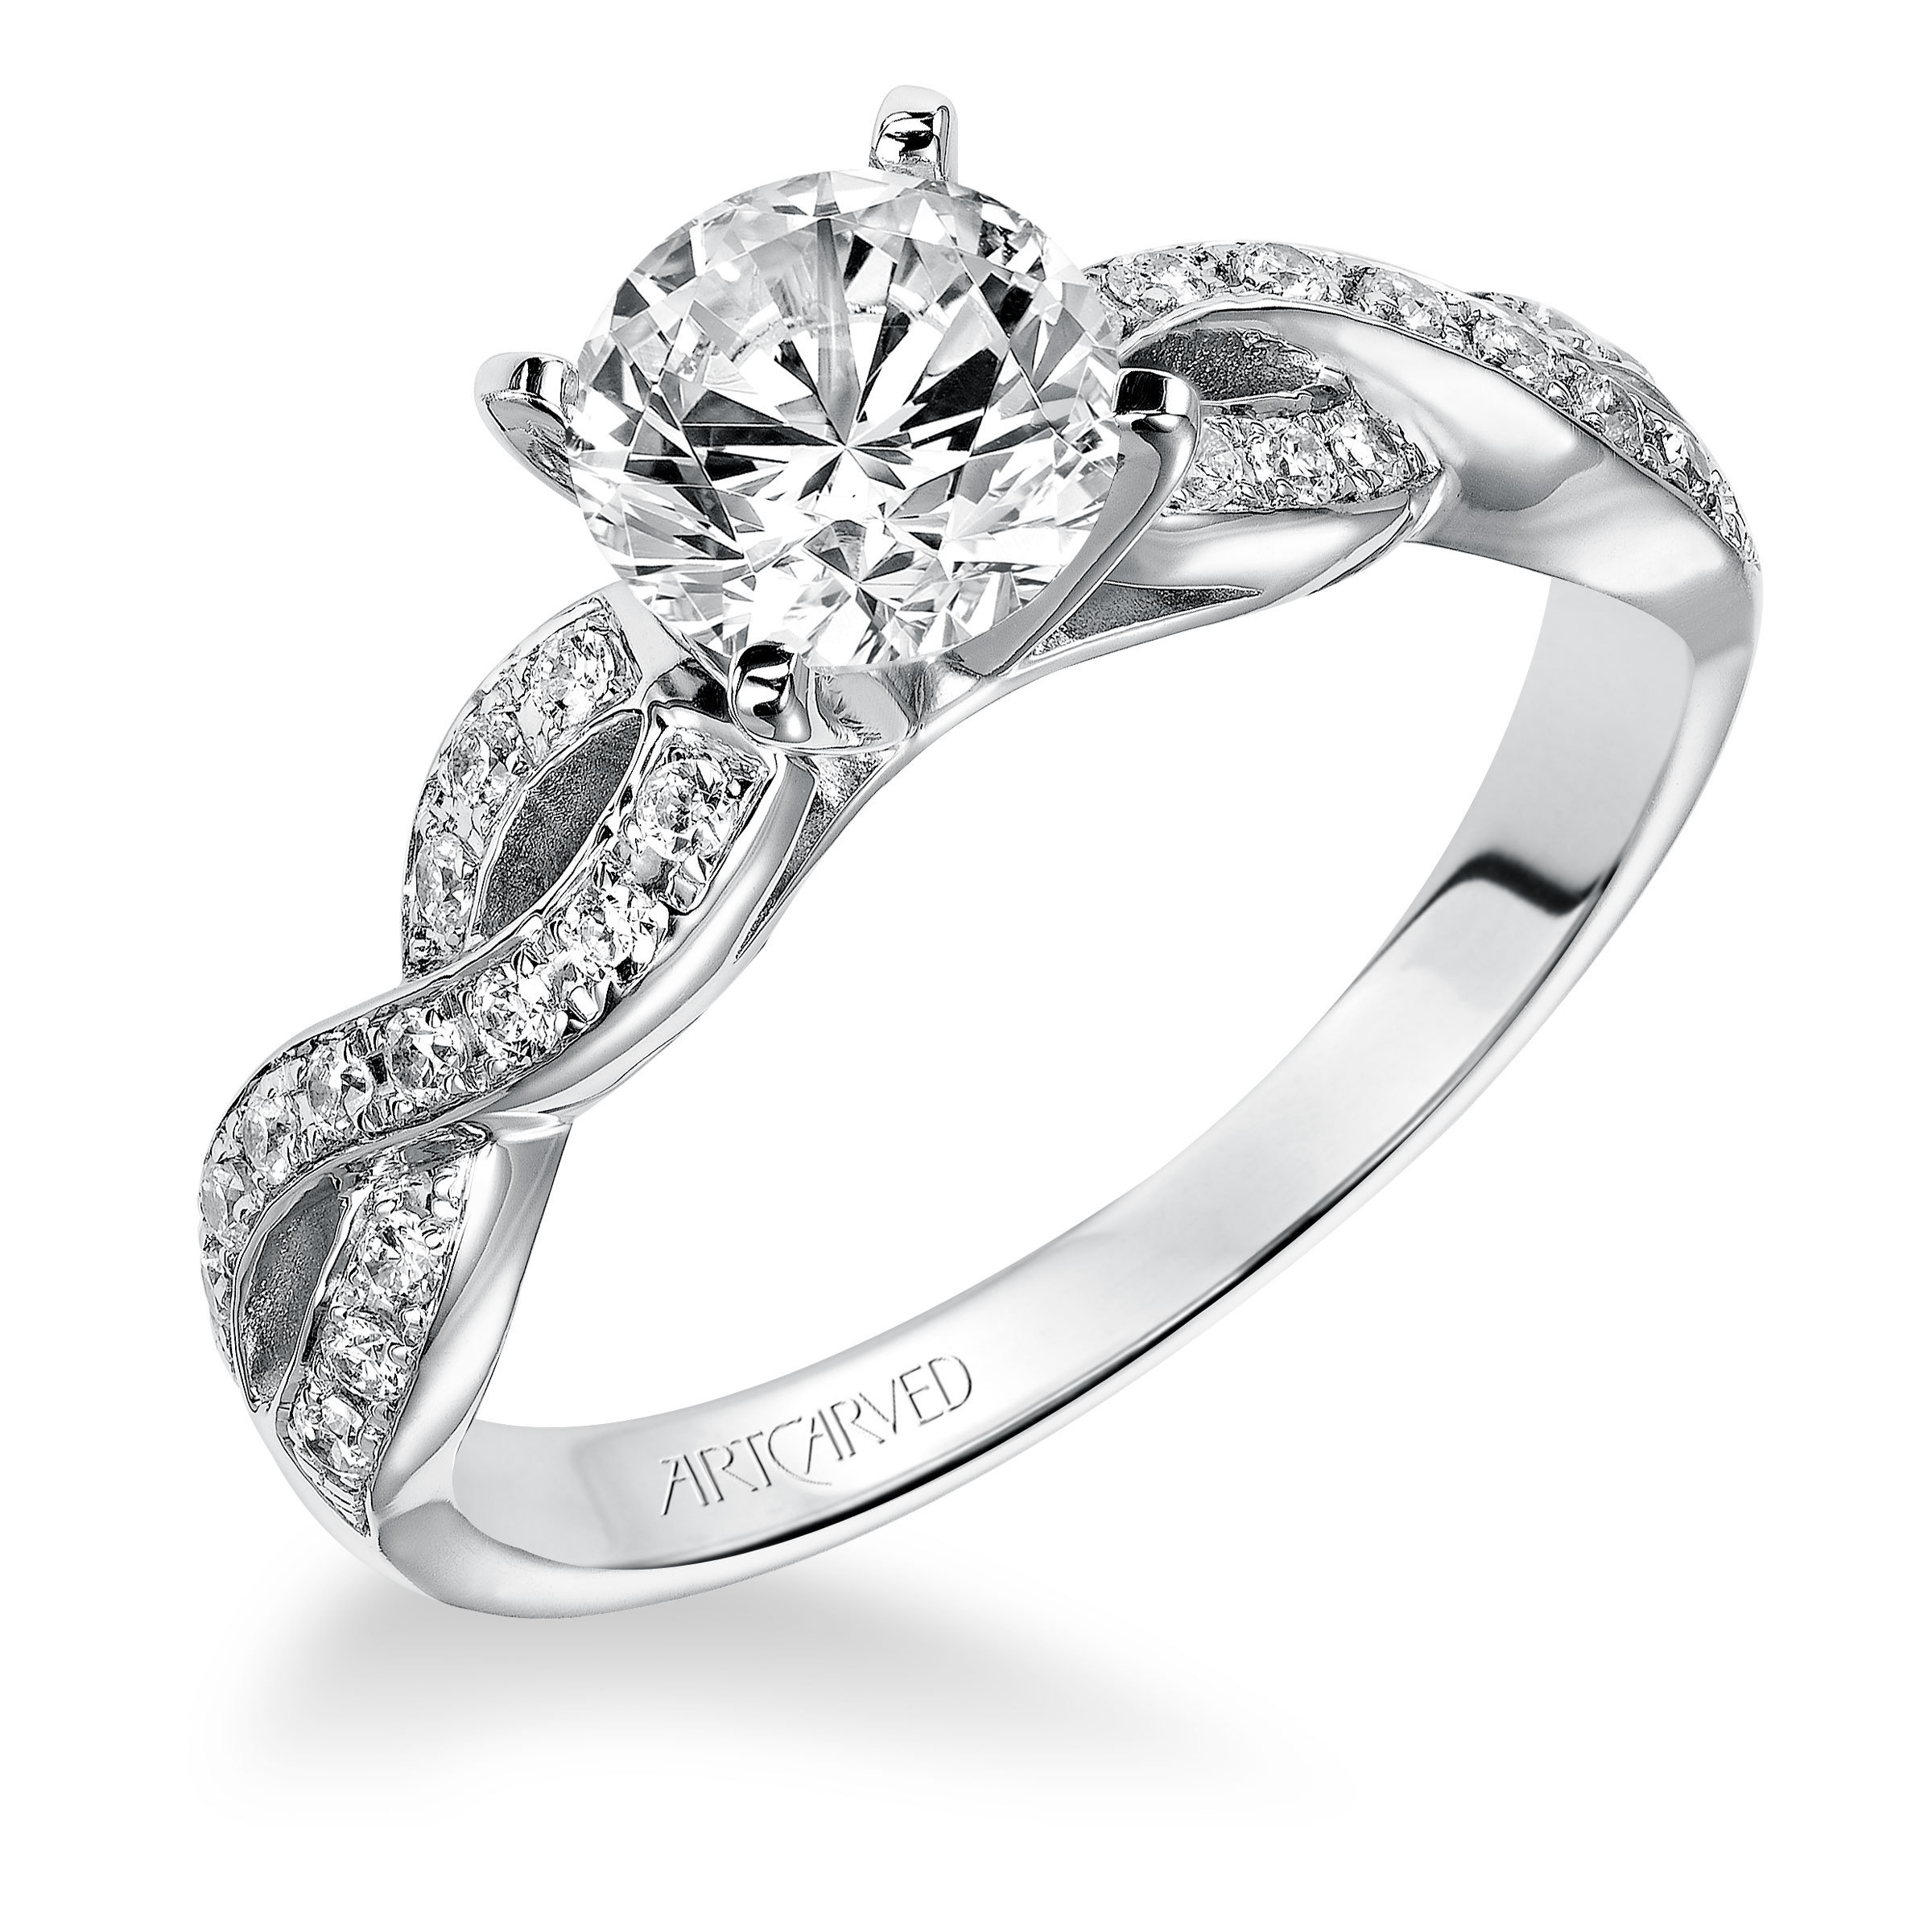 andrew row fabrikant size white diamond rings sons com img band category product wedding gold estate